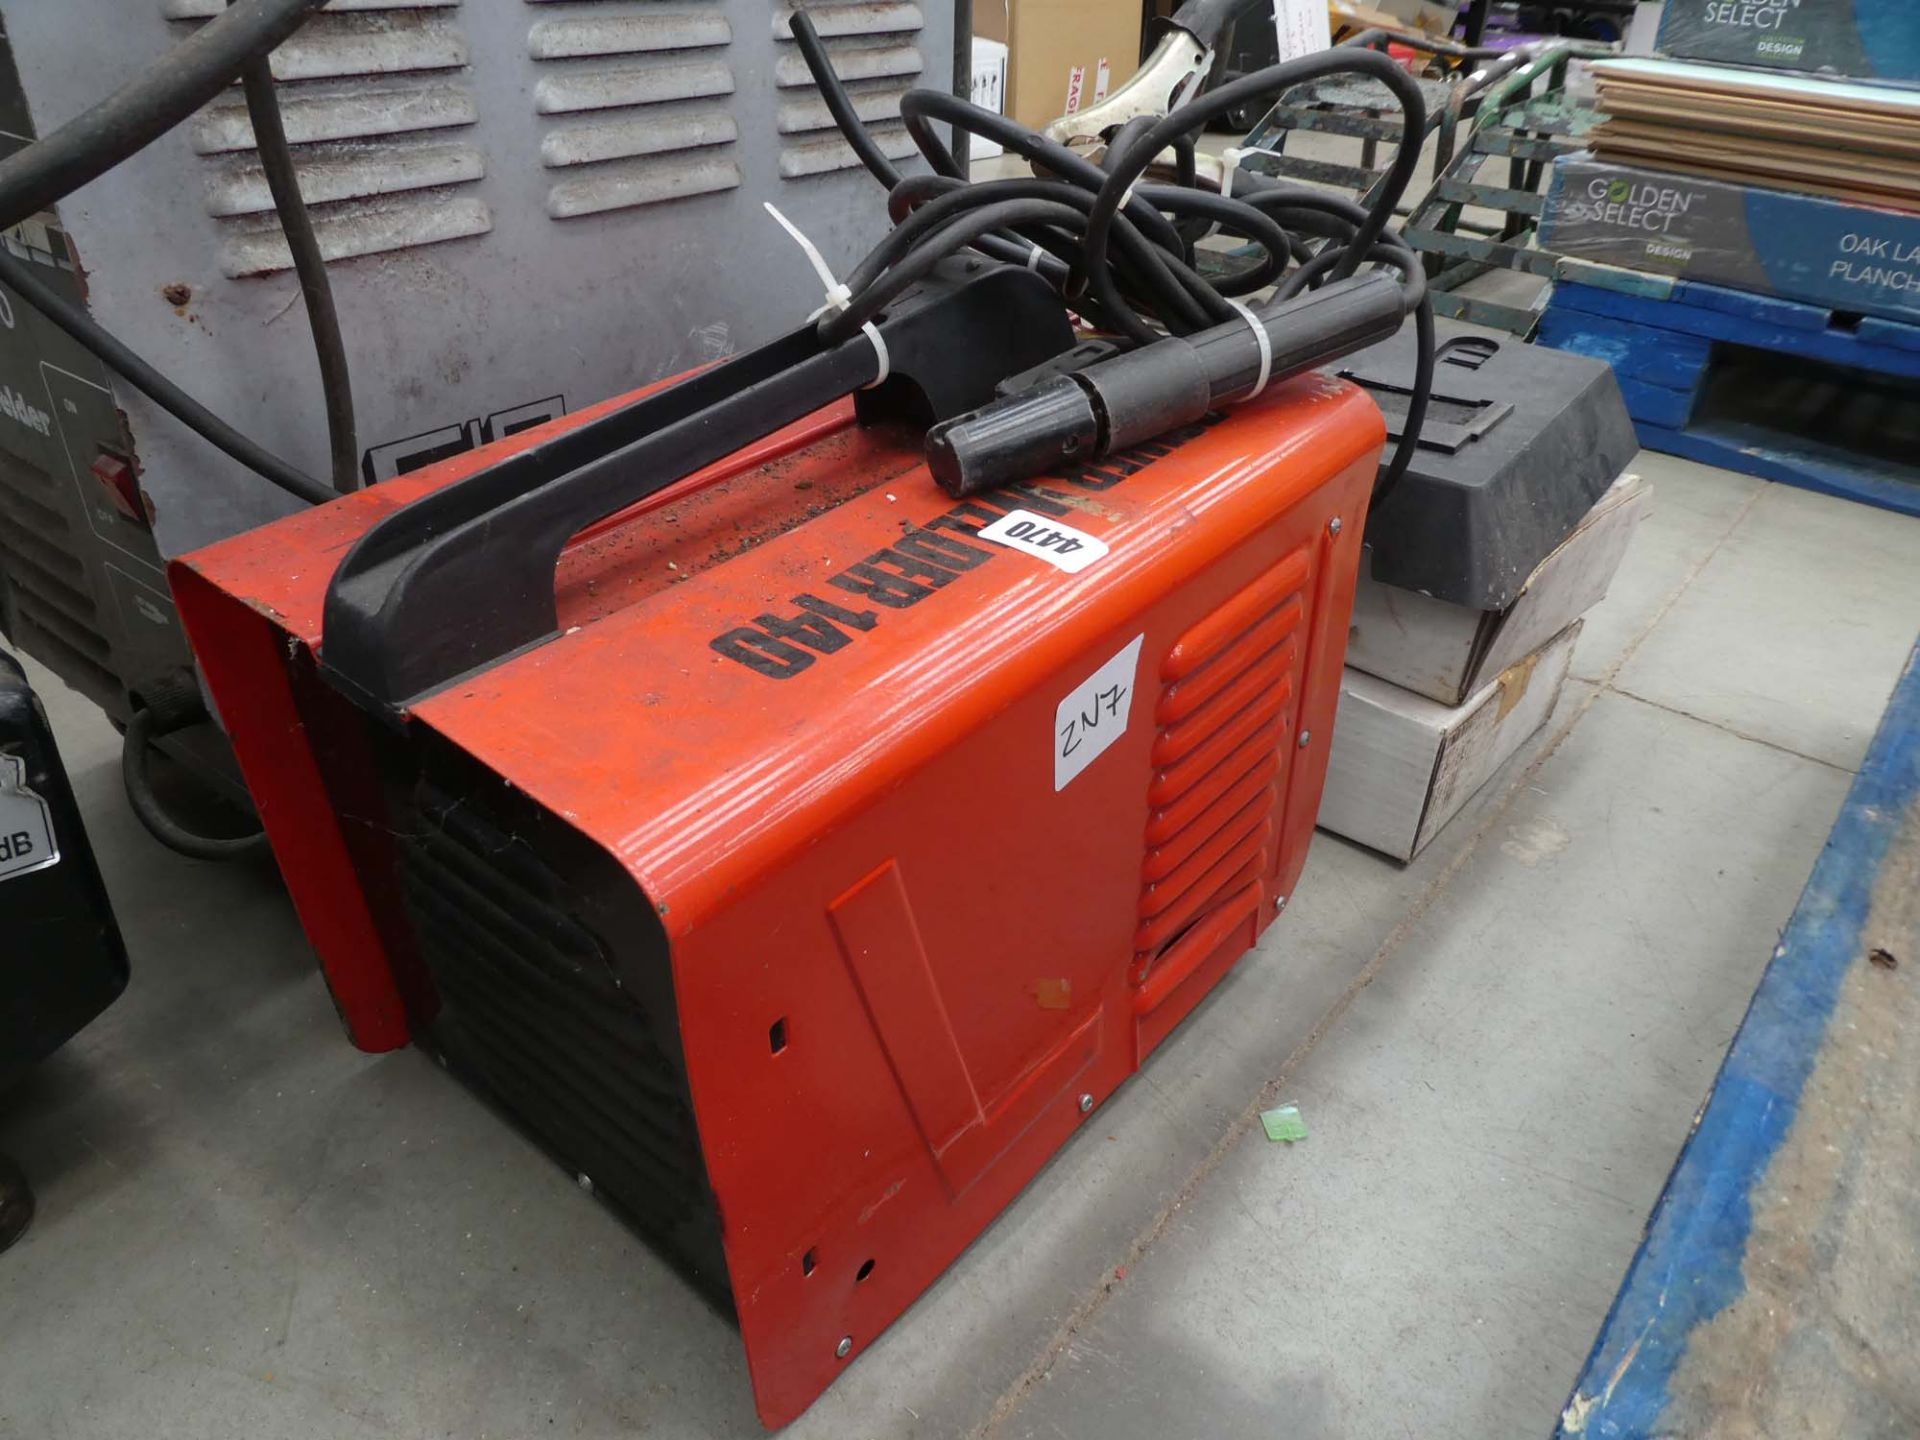 Power 140 welder with mask - Image 2 of 2